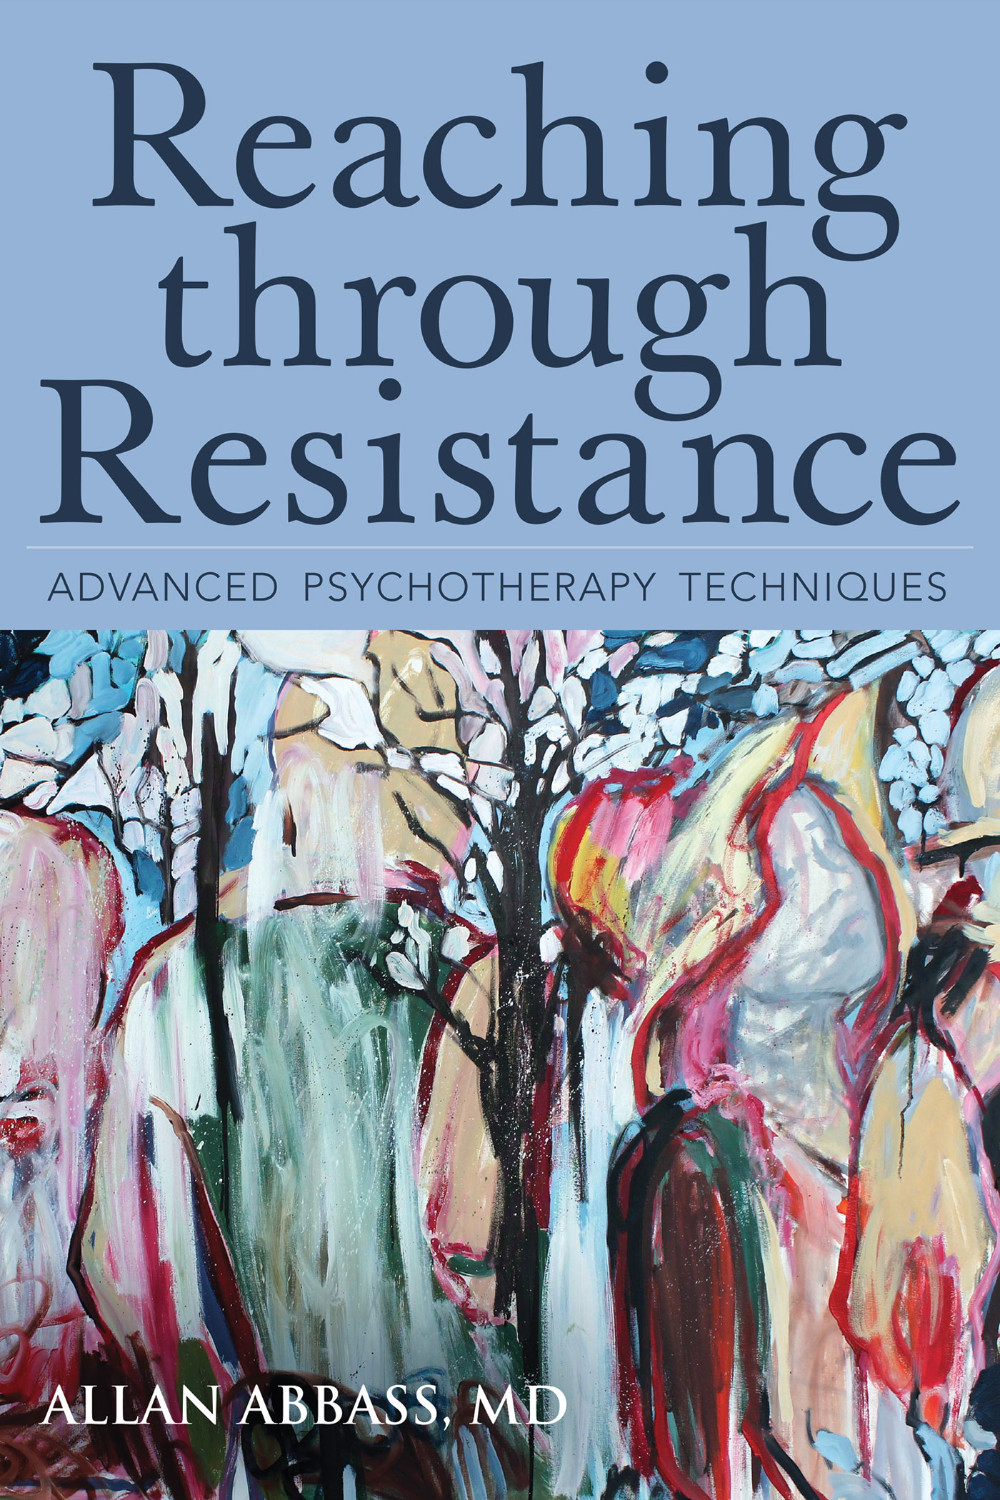 Abbass_ReachingthroughResistance_Front_Final_12814_WebEBook_1400pxwide_529-92.jpg